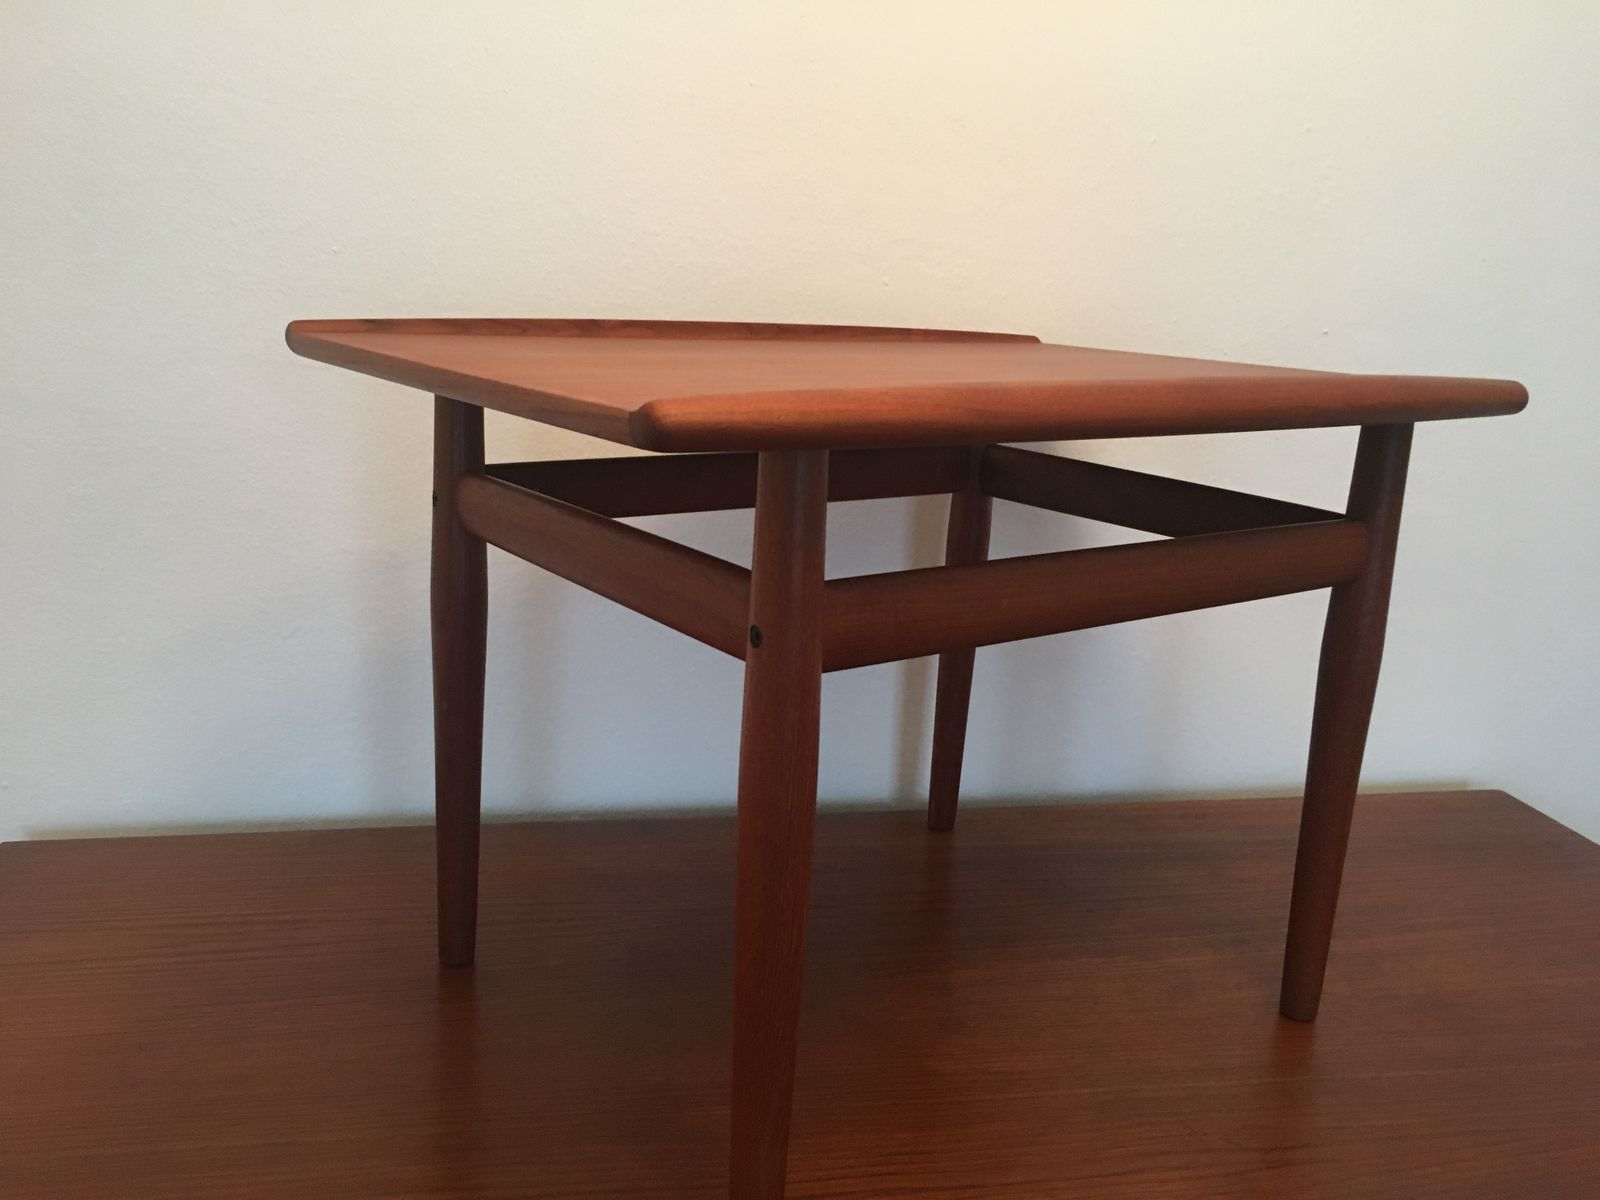 Danish Teak Coffee Table By Grete Jalk For Glostrup 1960s For Sale At Pamono